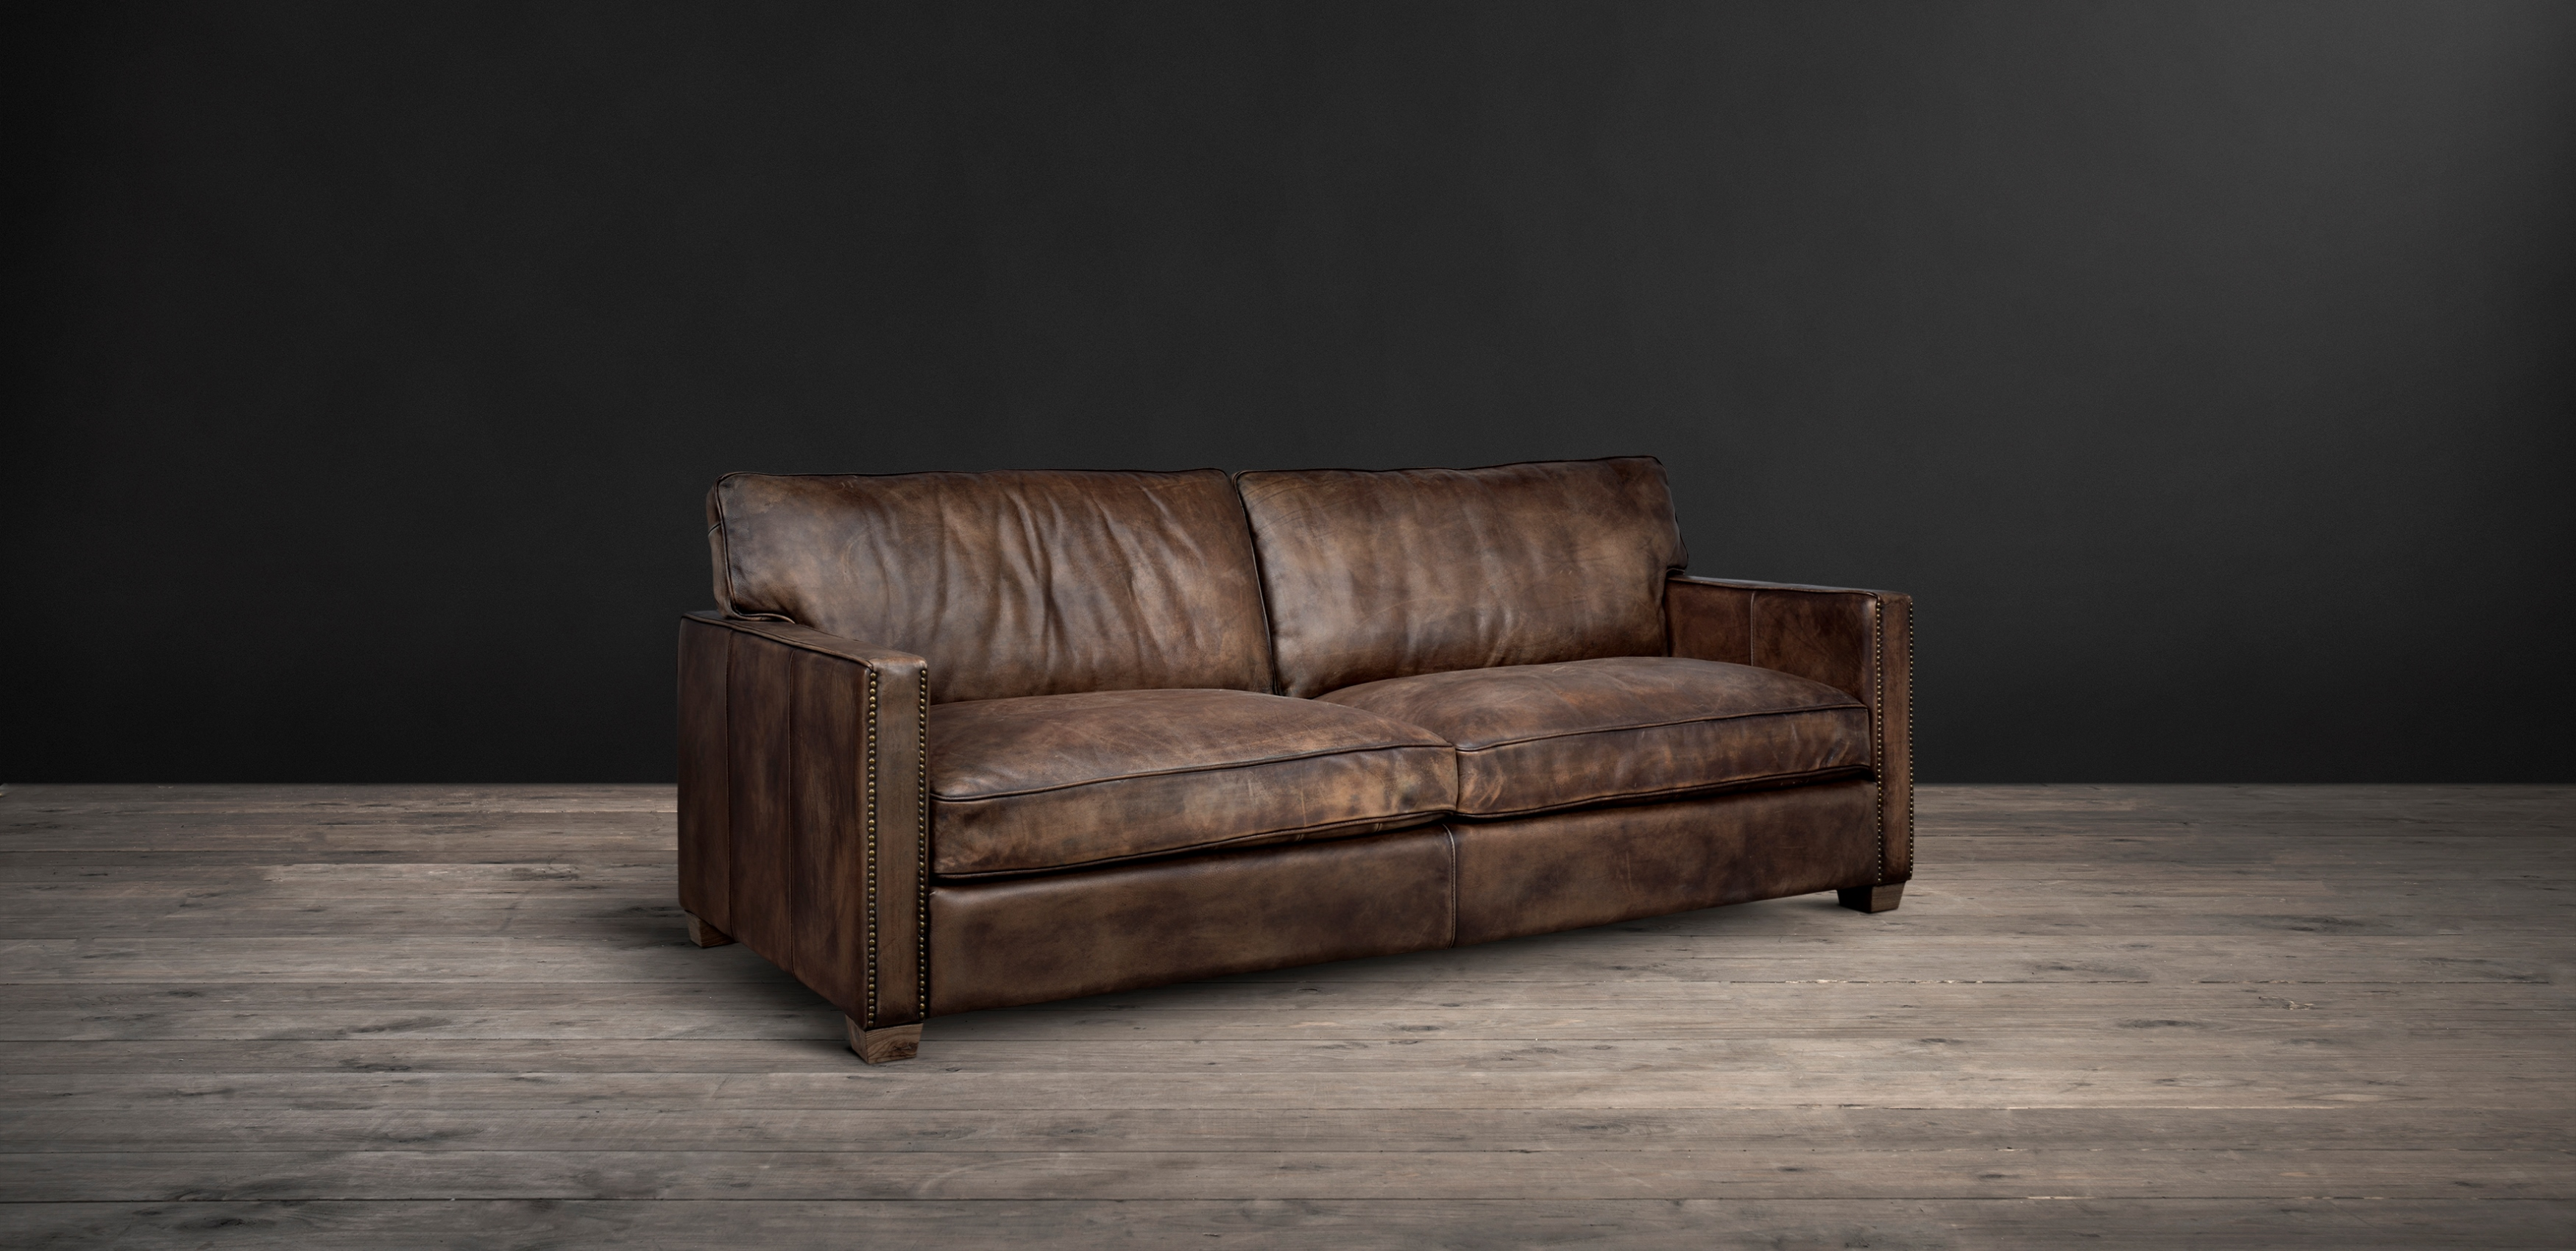 Viscount William – The Classic Leather Sofa